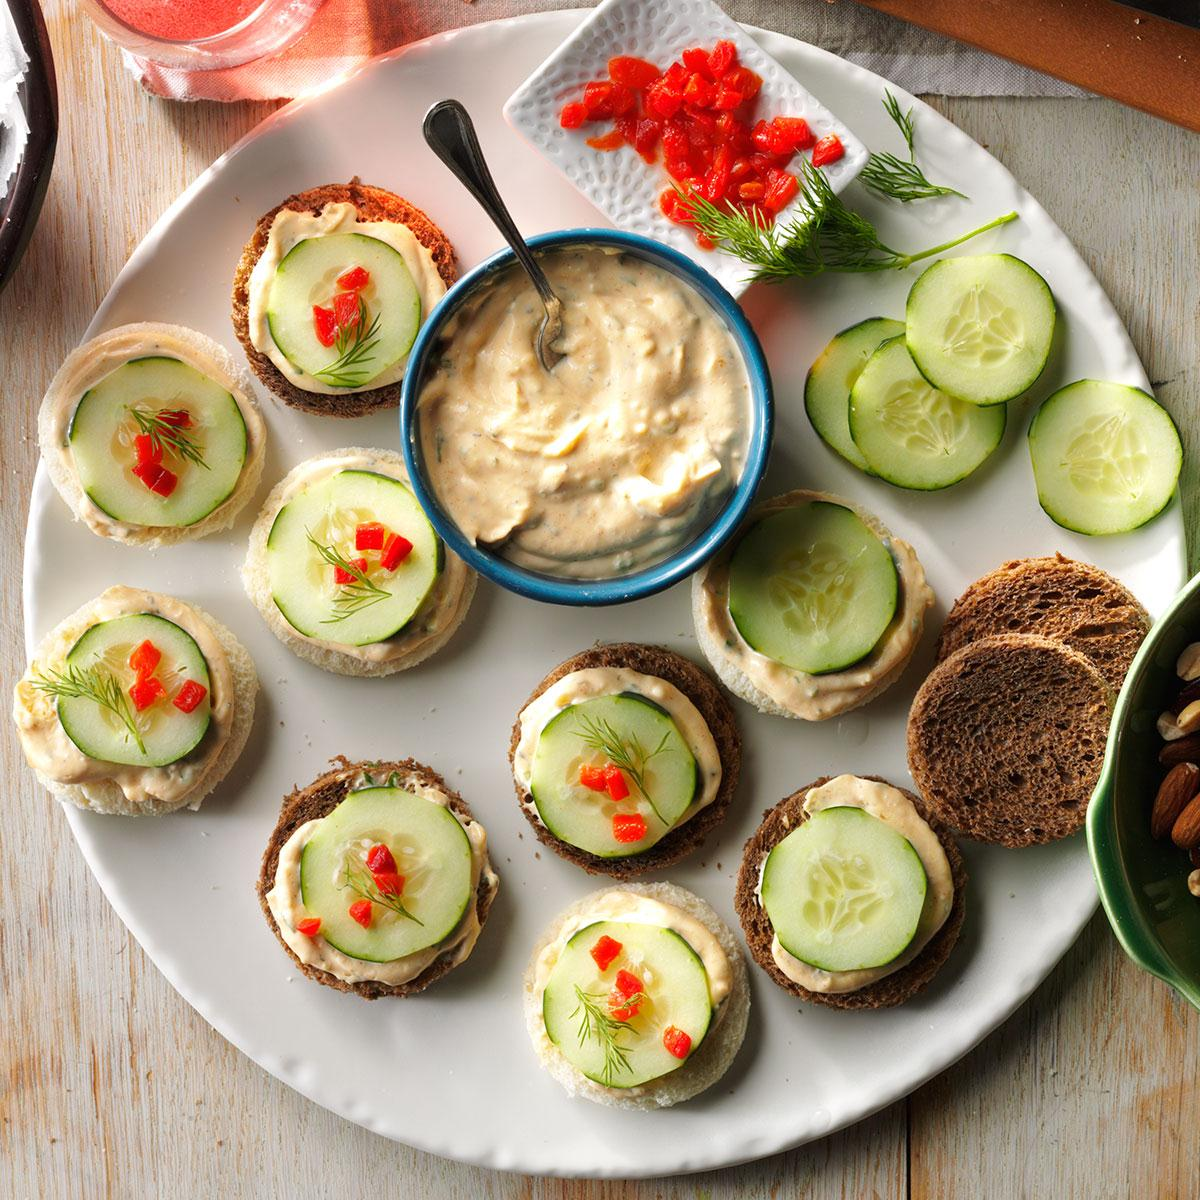 cucumber canapes recipe taste of home - Canapes